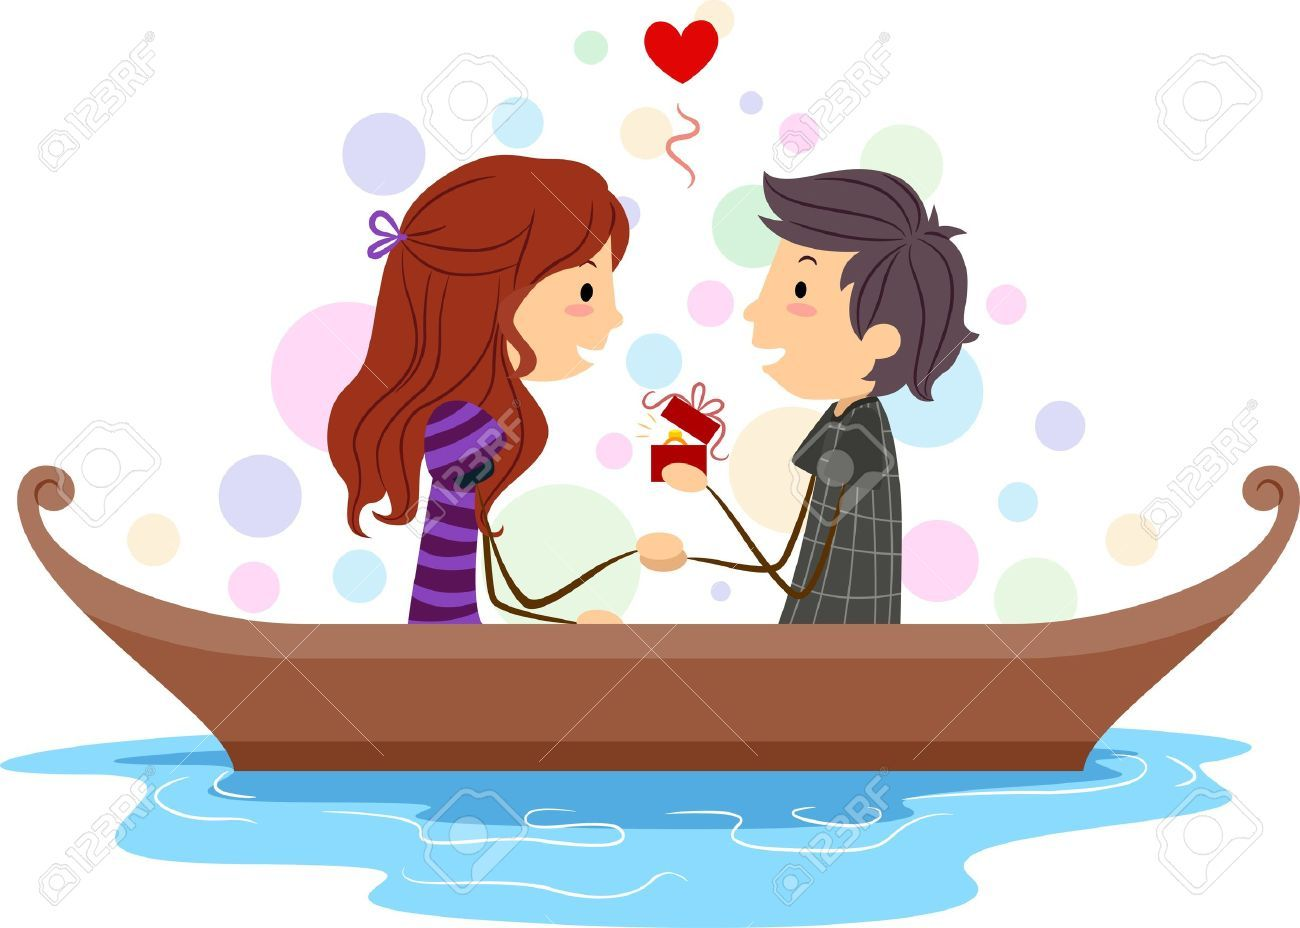 Image result for proposal cartoon